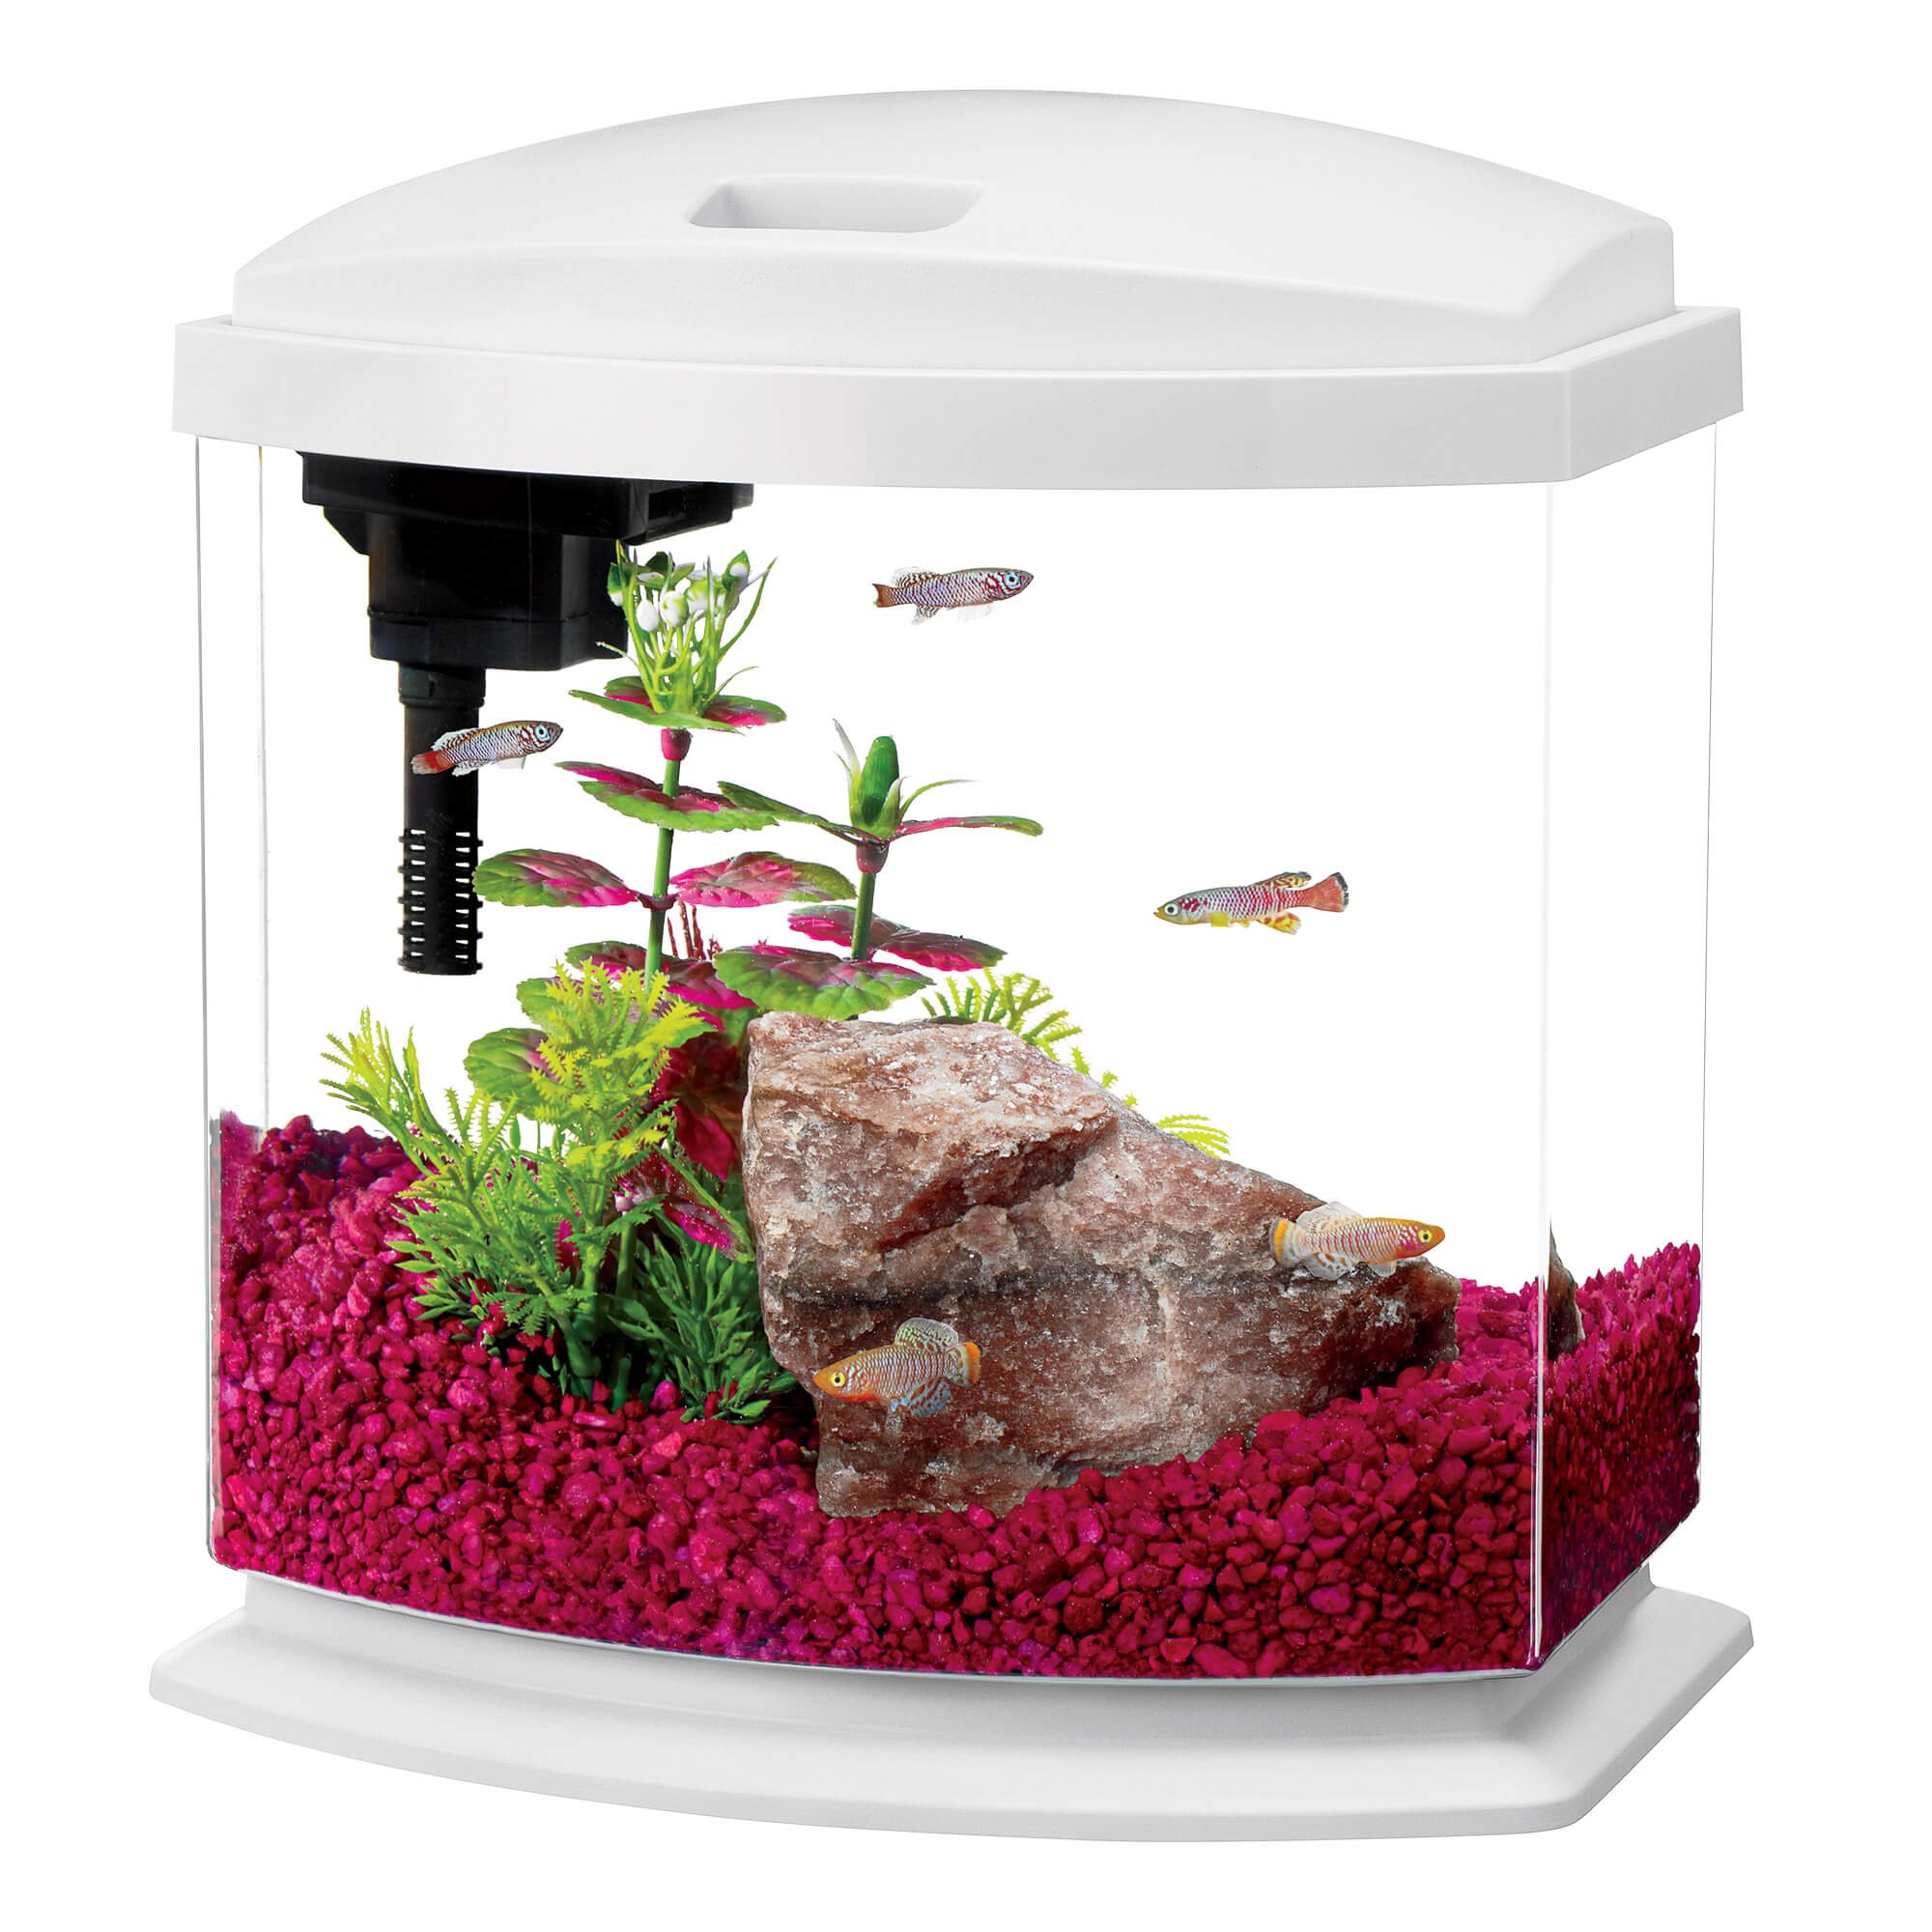 Aqueon minibow led desktop fish aquarium kit in white petco for 2 gallon betta fish tank